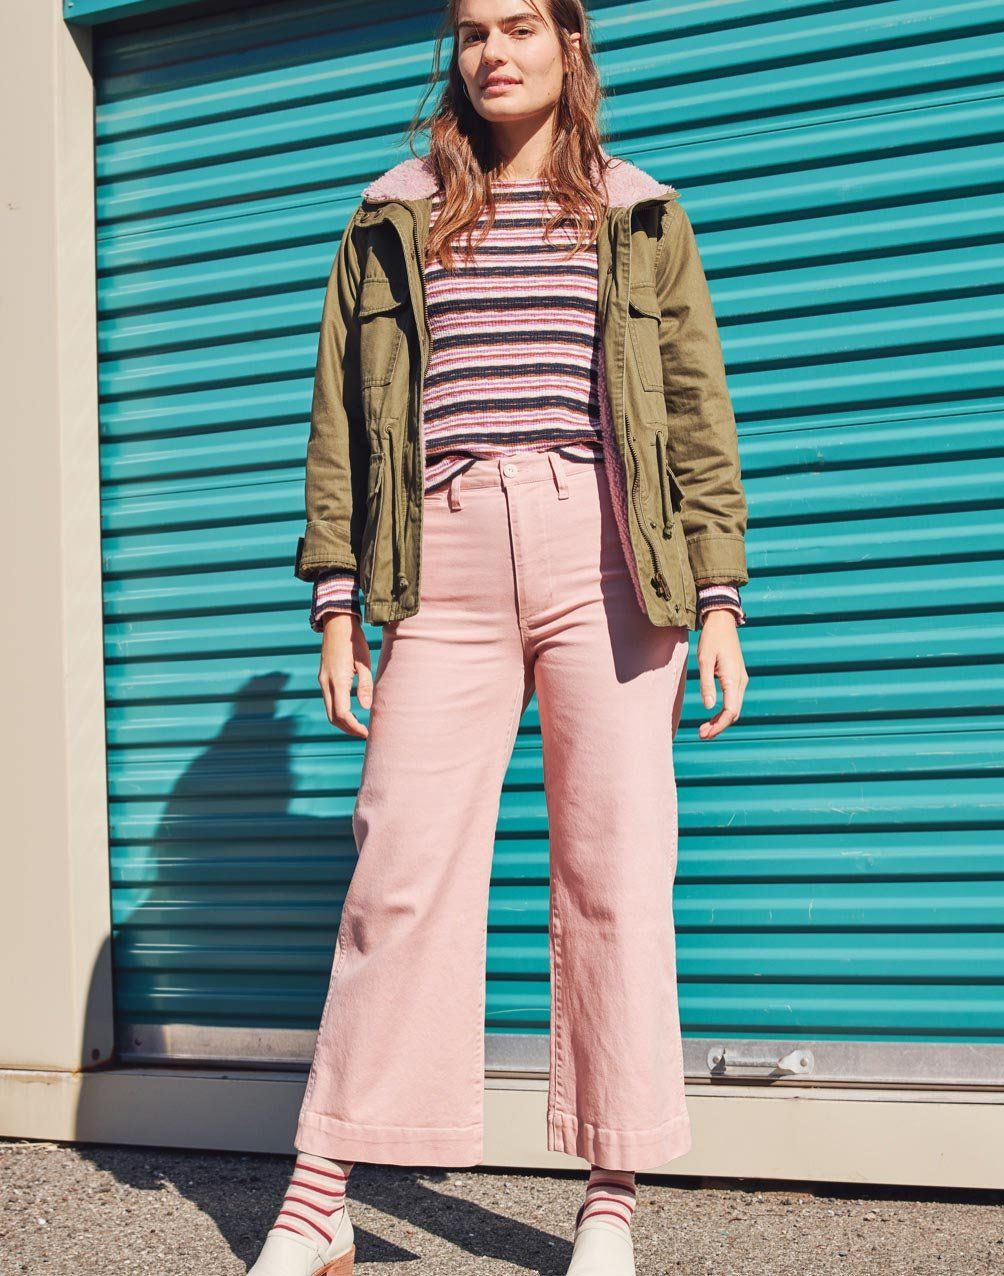 10d38b0ee4ac madewell emmett wide-leg crop pants worn with sherpa trimmed surplus jacket  + button-sleeve tee.